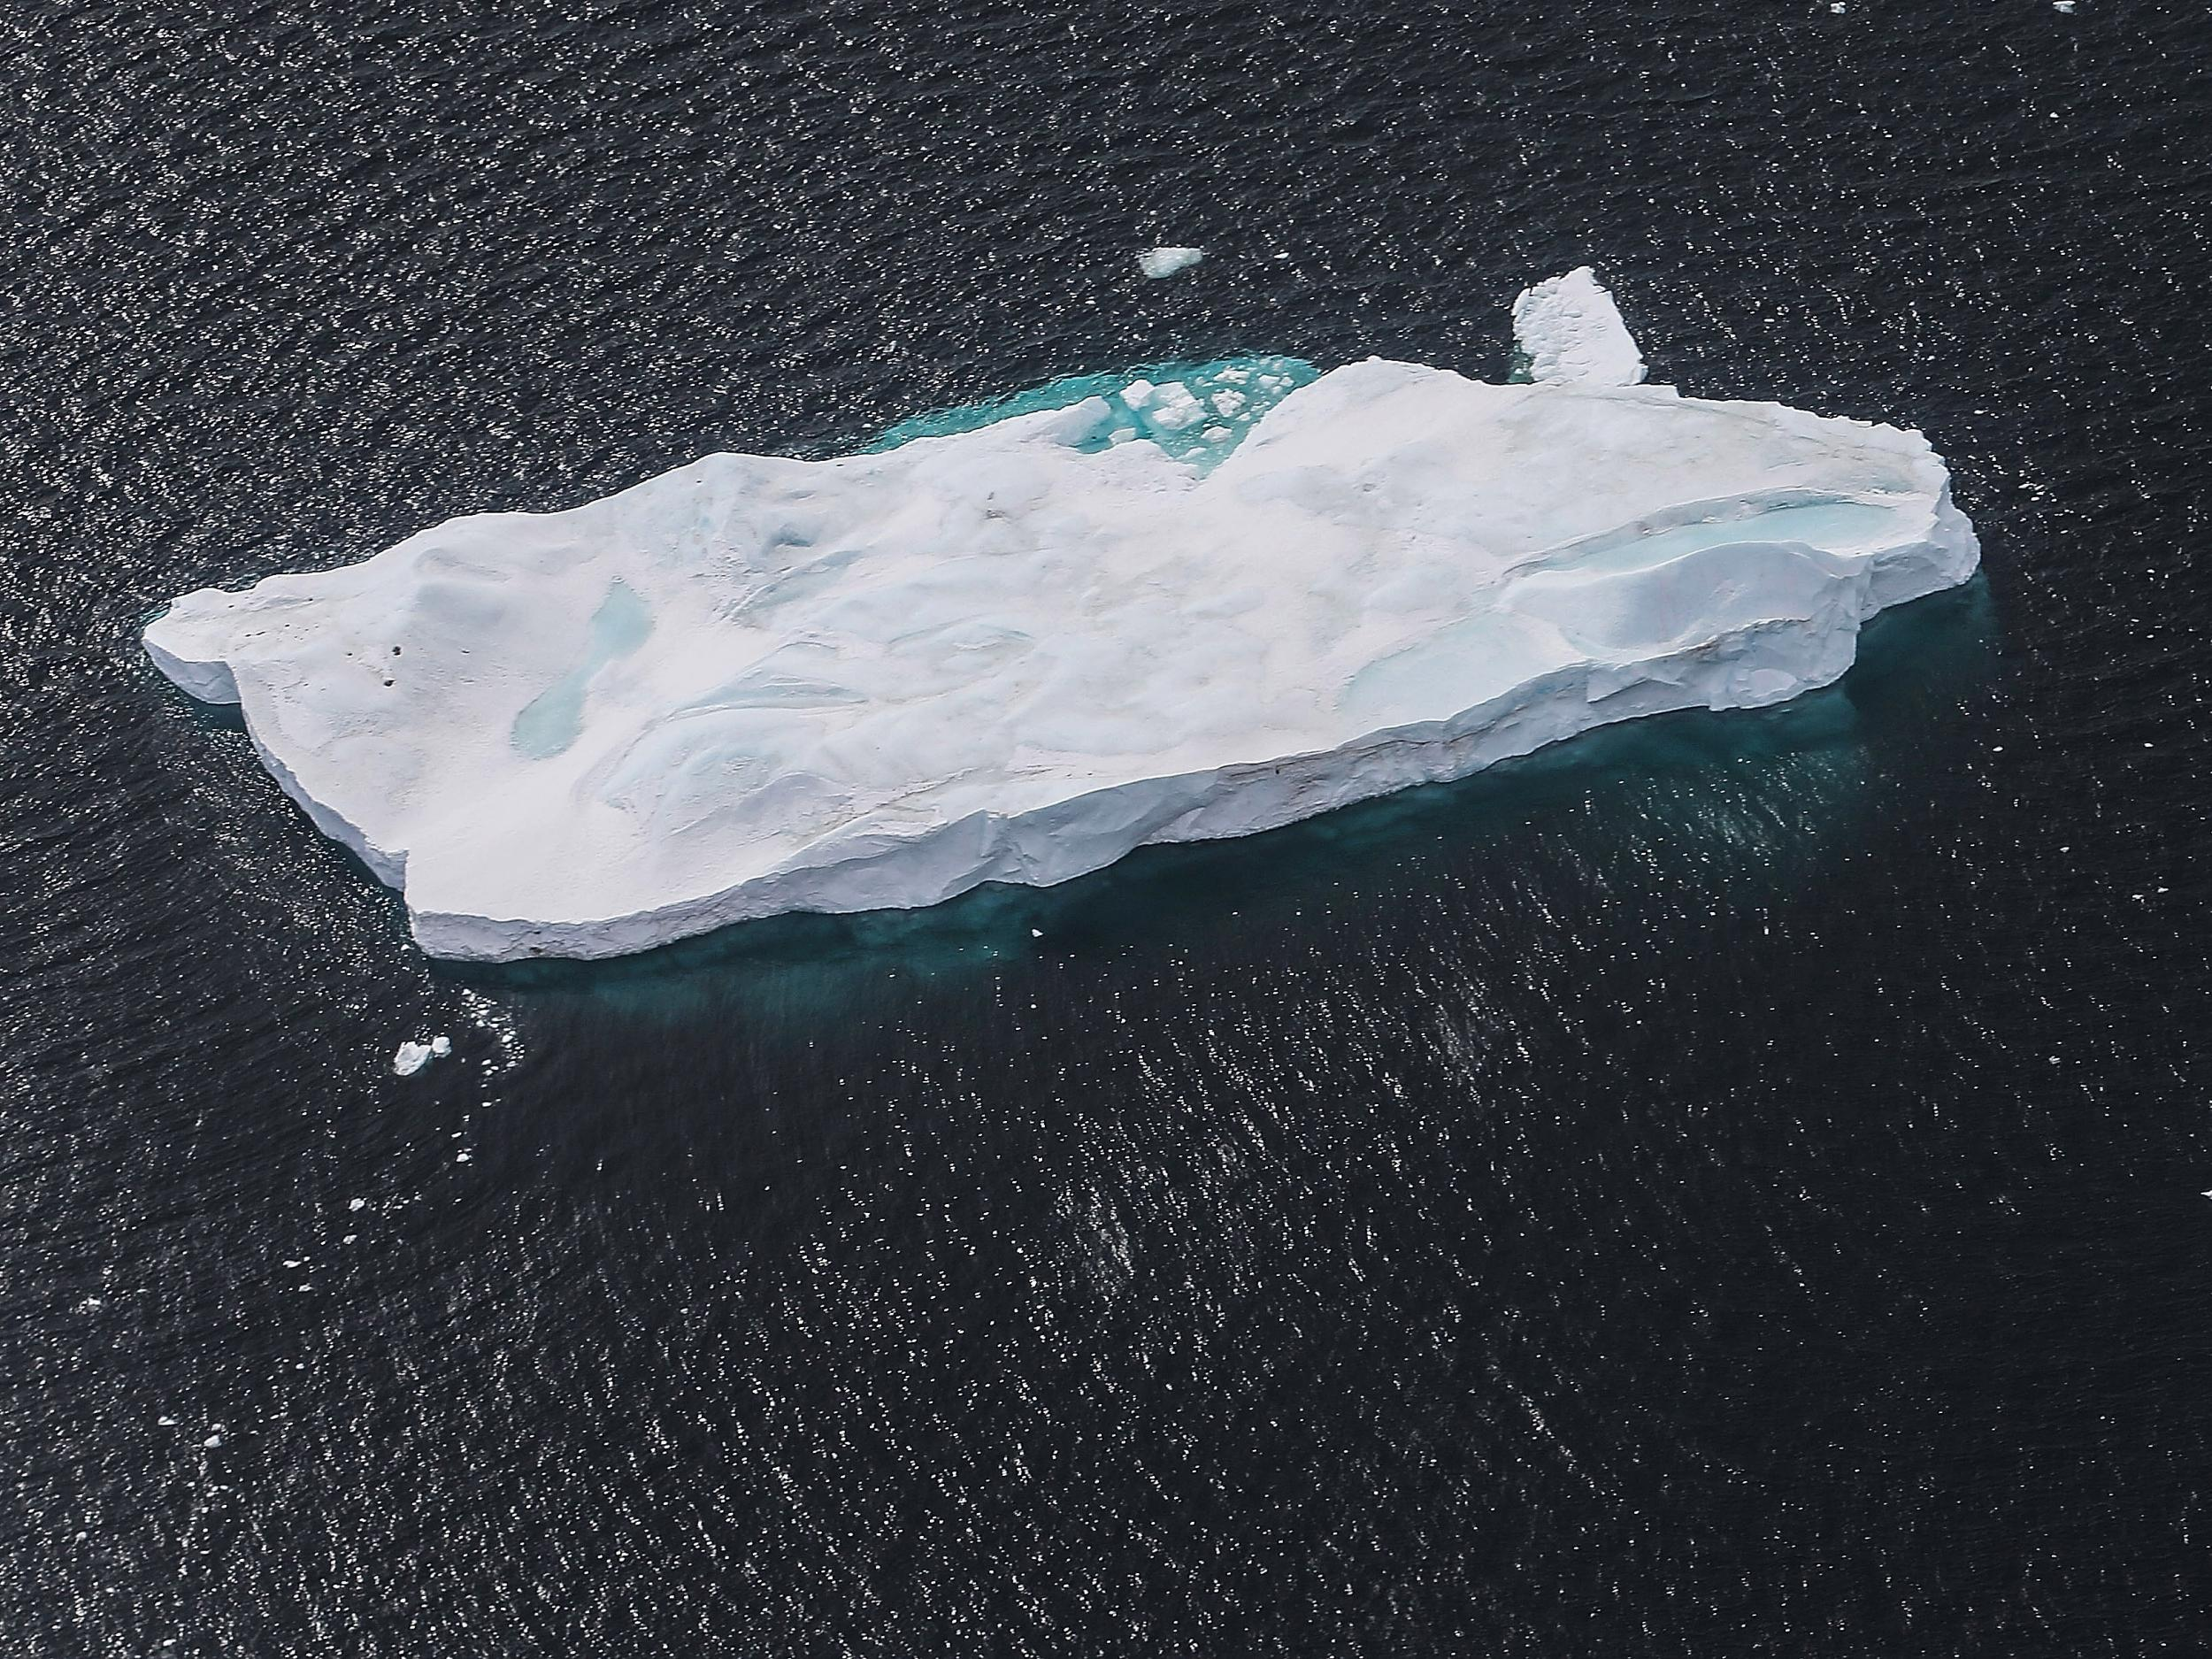 Worst-case global warming predictions are the most accurate, say climate experts